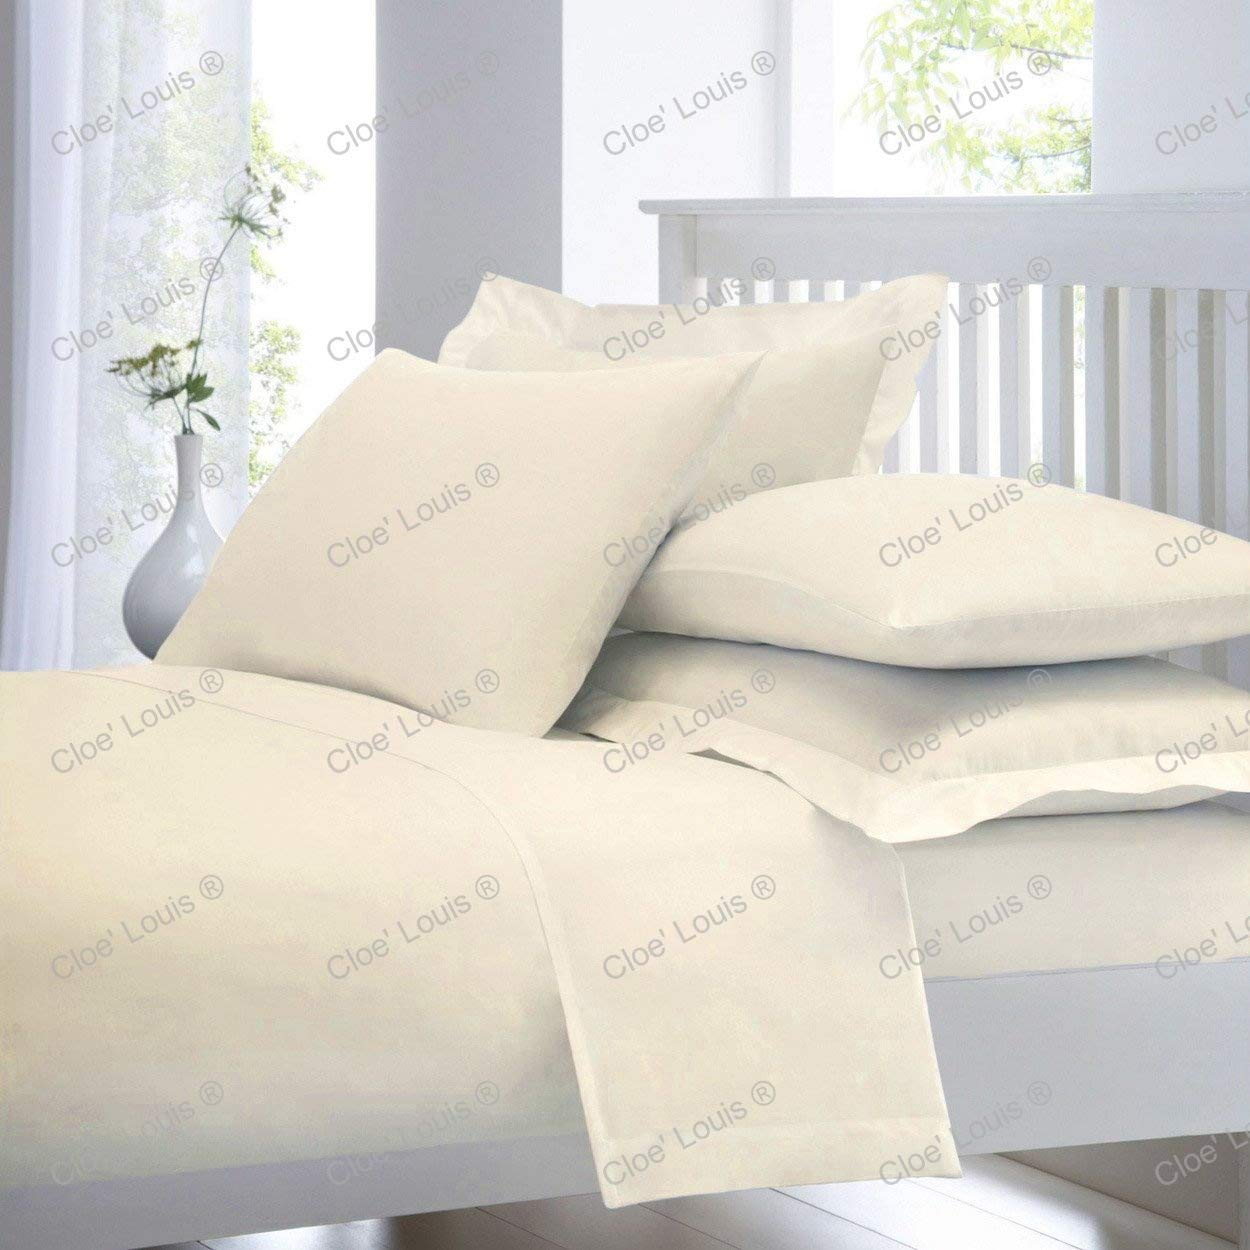 Cloe' Louis ® 200 Thread Count 100% Cotton Flat Bed Sheet Linen in Single Double King Super King Size or Pair of Pillow Cases (Double, Cream) Cloe' Louis